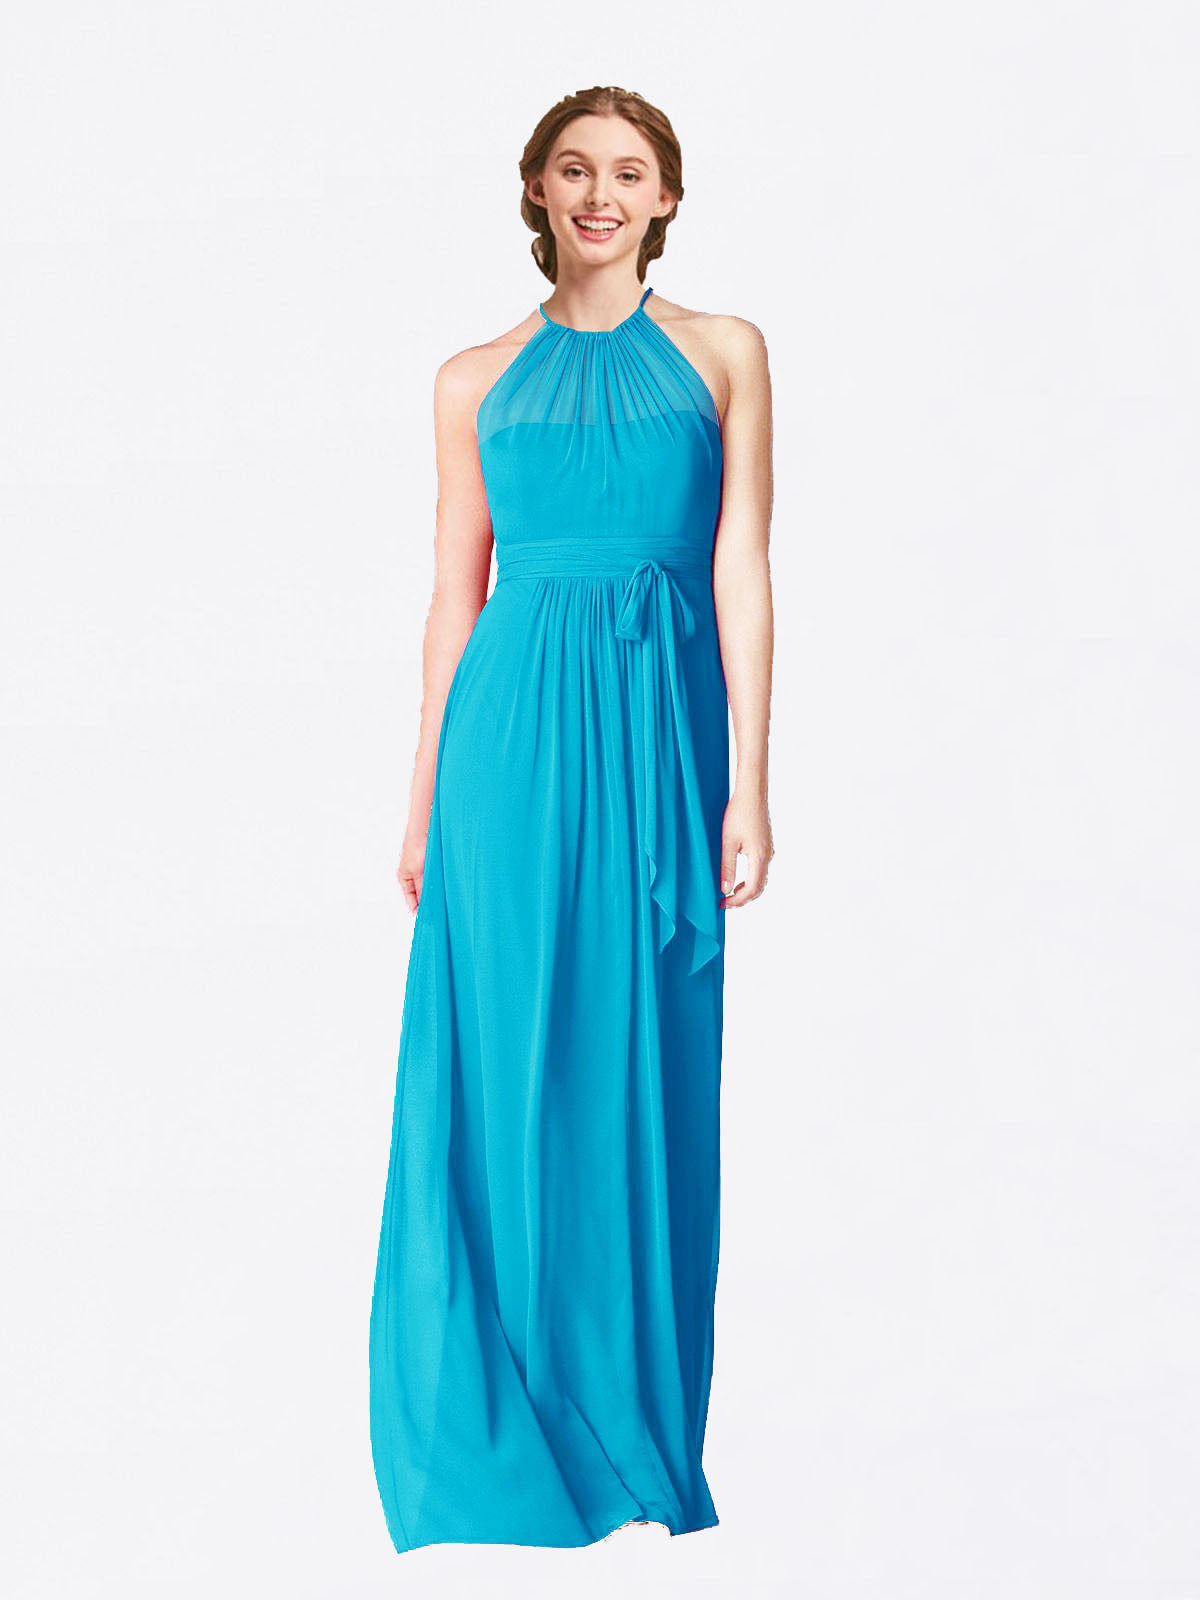 Long A-Line Halter Sleeveless Turquoise Chiffon Bridesmaid Dress Laura